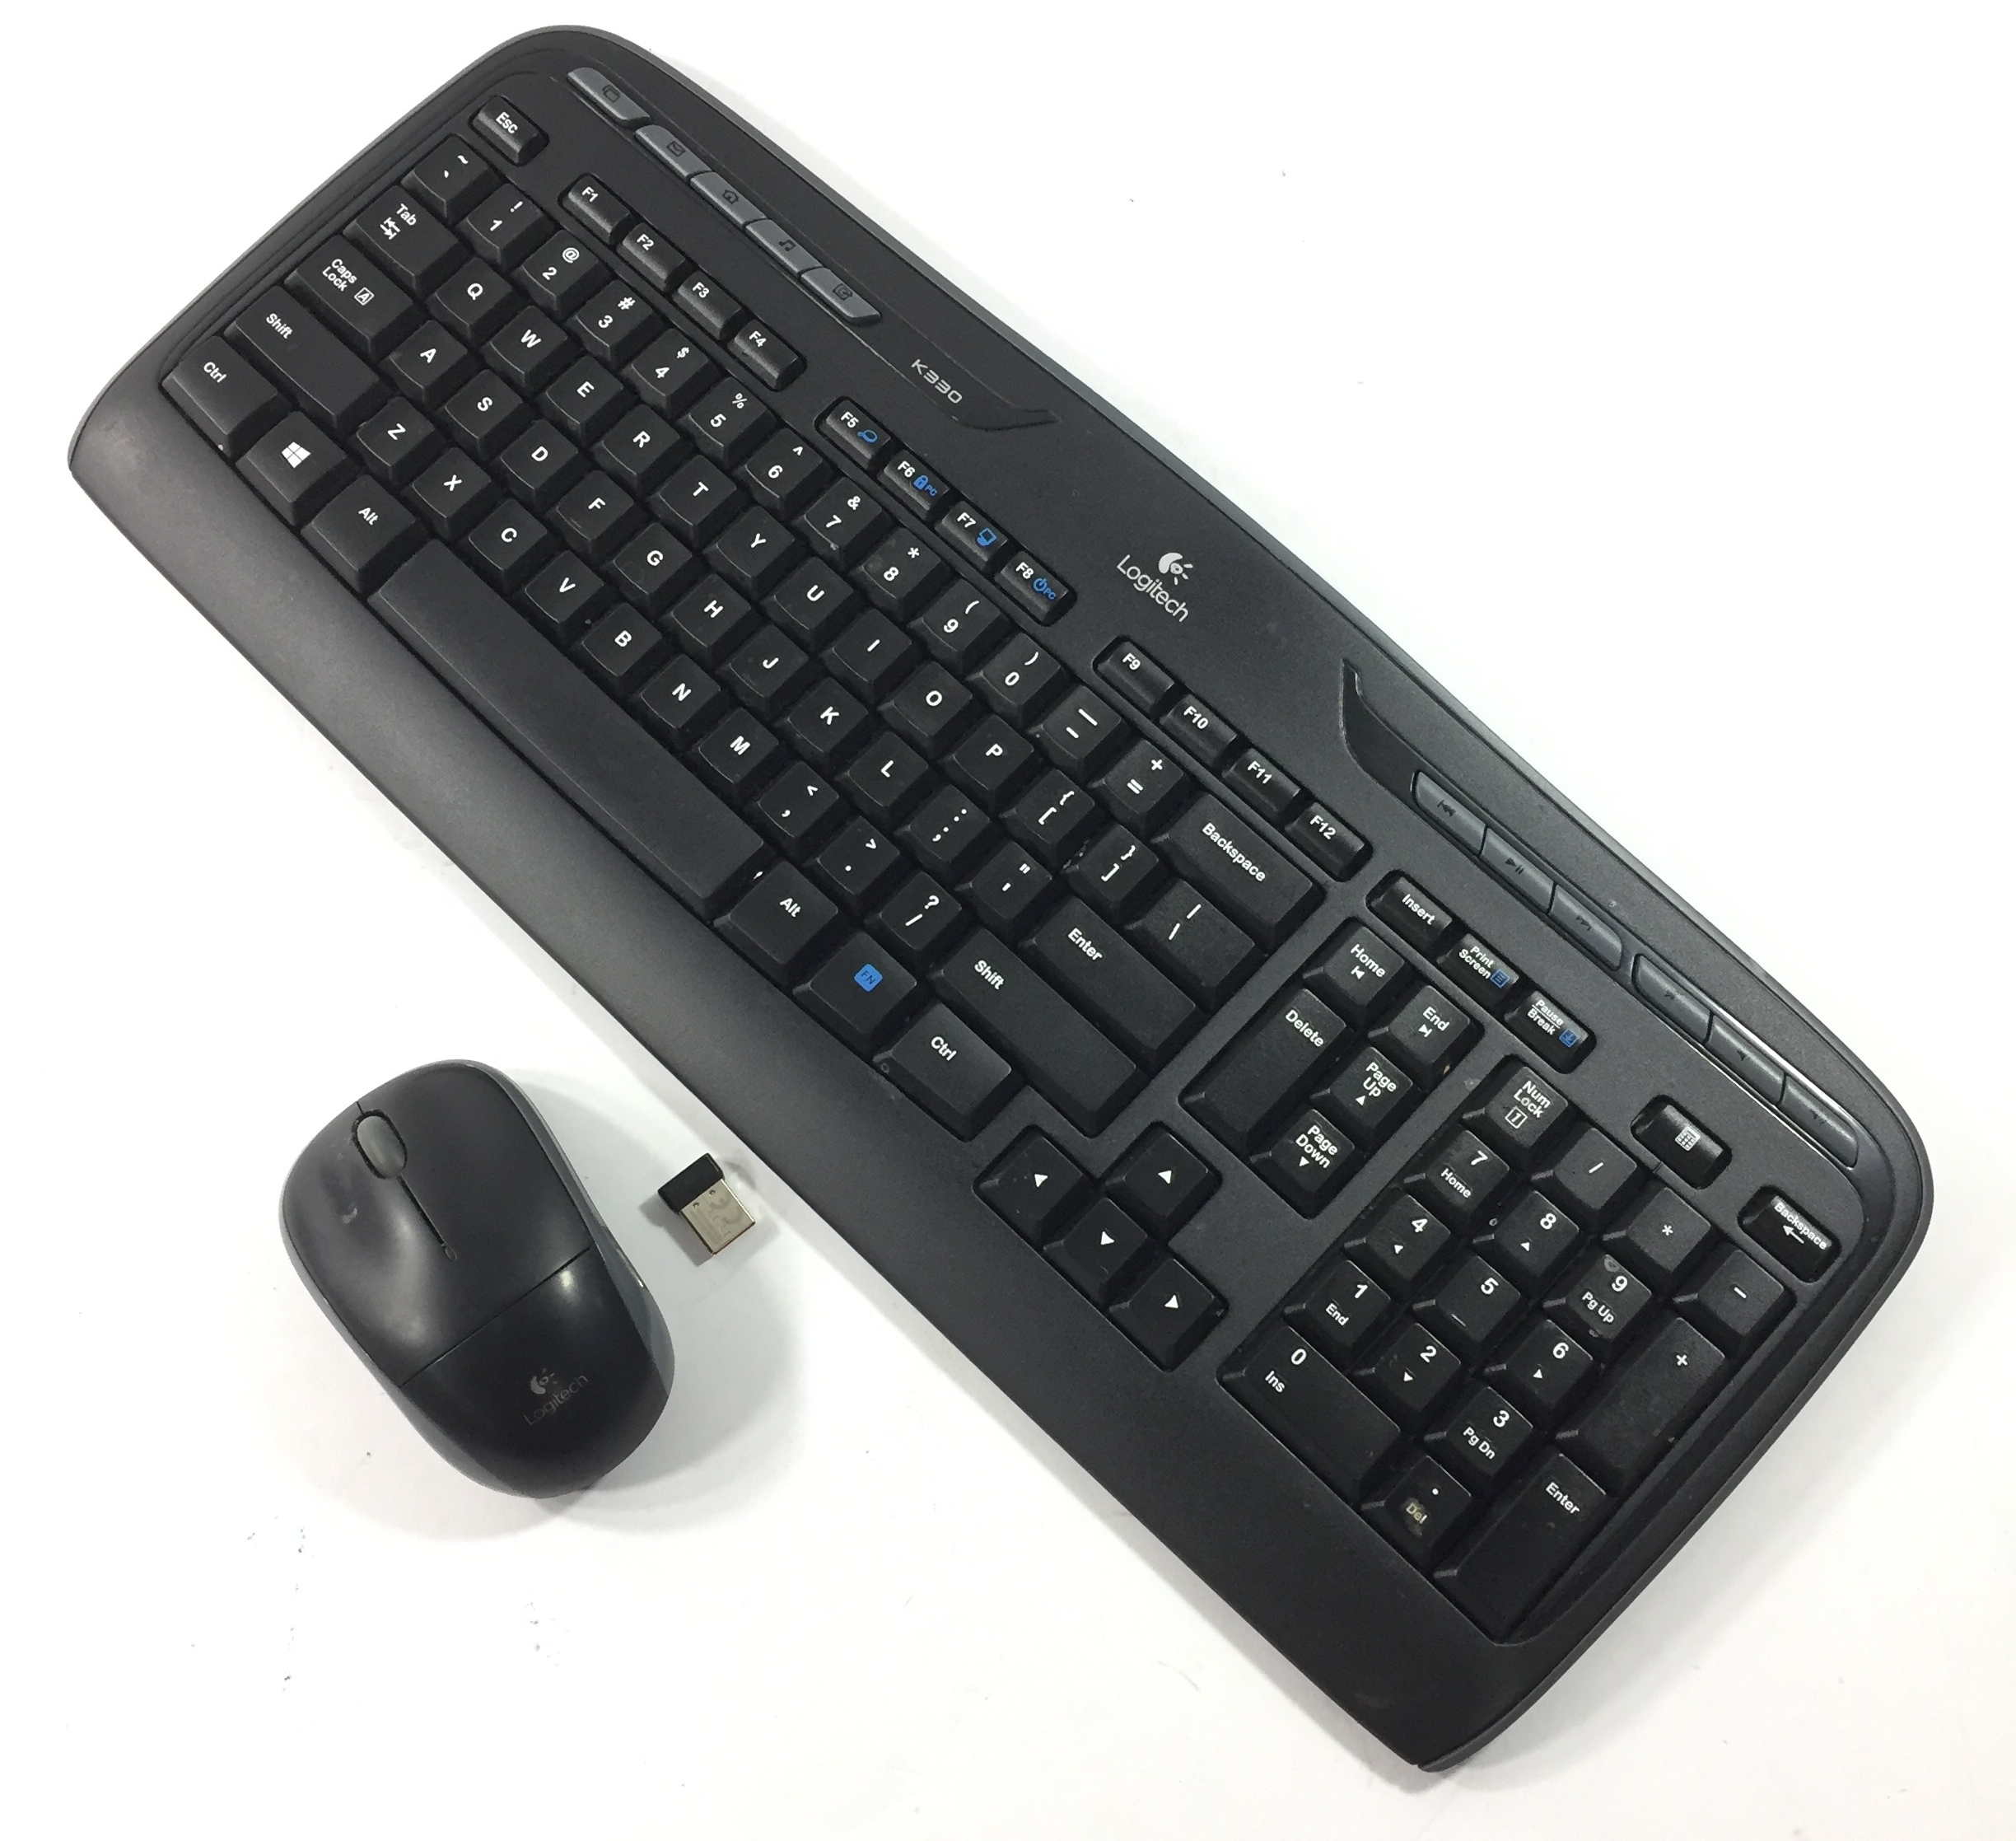 f1ef24b8af5 Logitech Wireless K330 Keyboard & M215 Mouse | Roseburg Help Desk